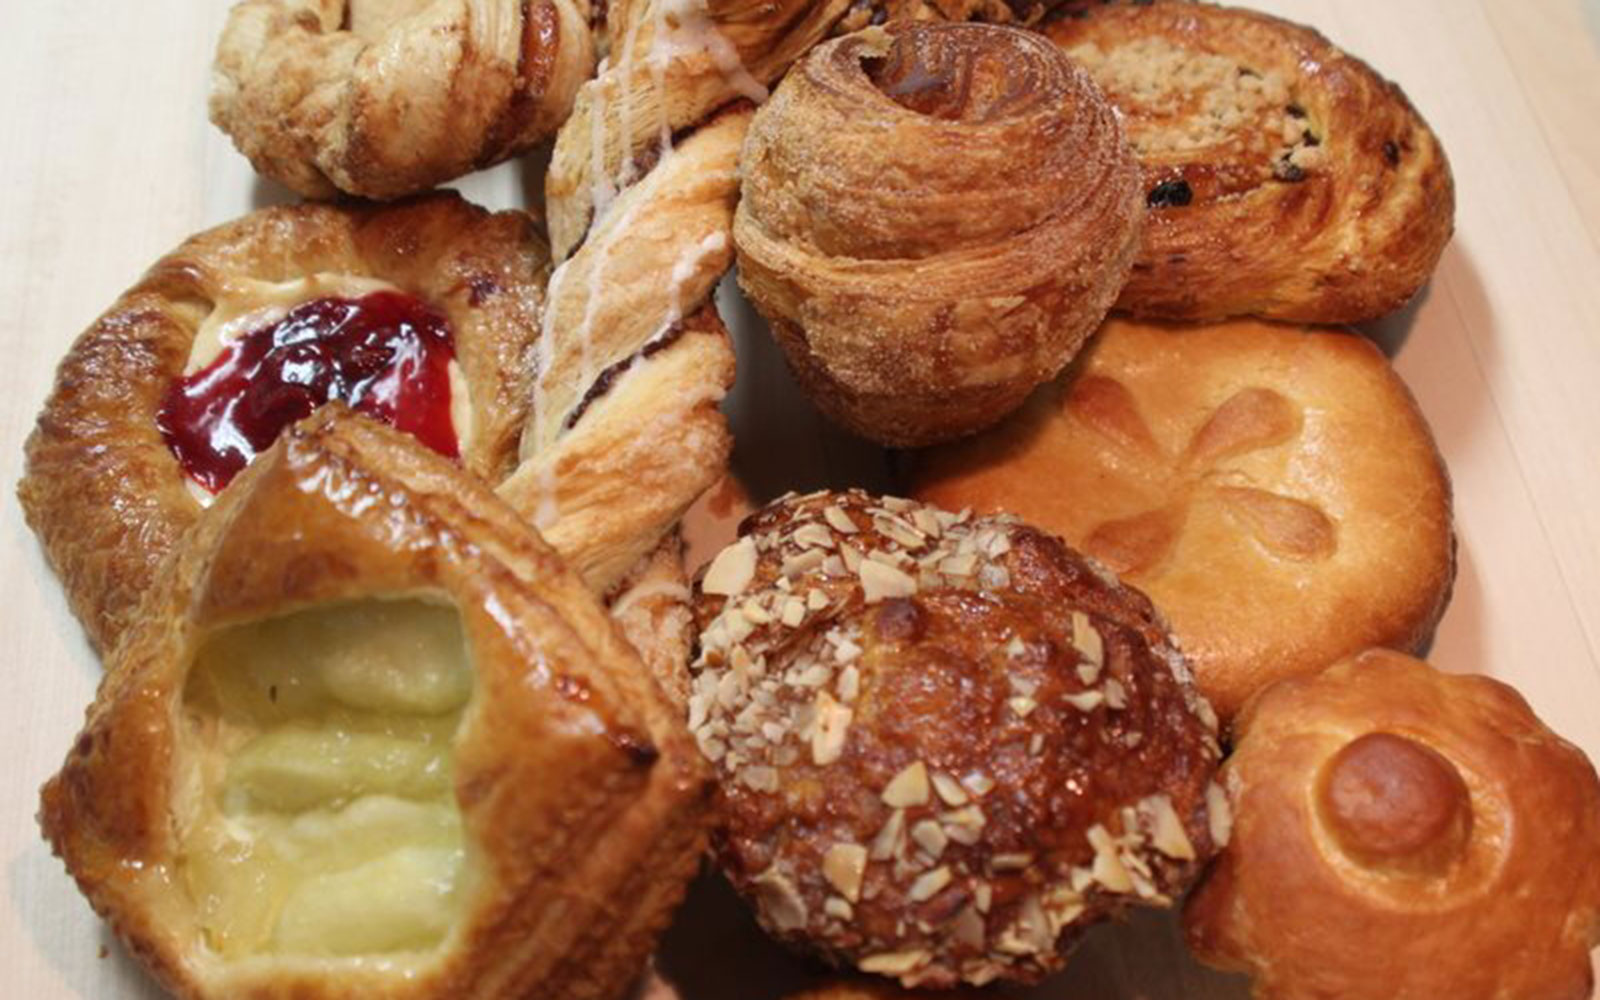 The 15 Best Small-Town Bakeries: Basque Boulangerie Café in Sonoma, California